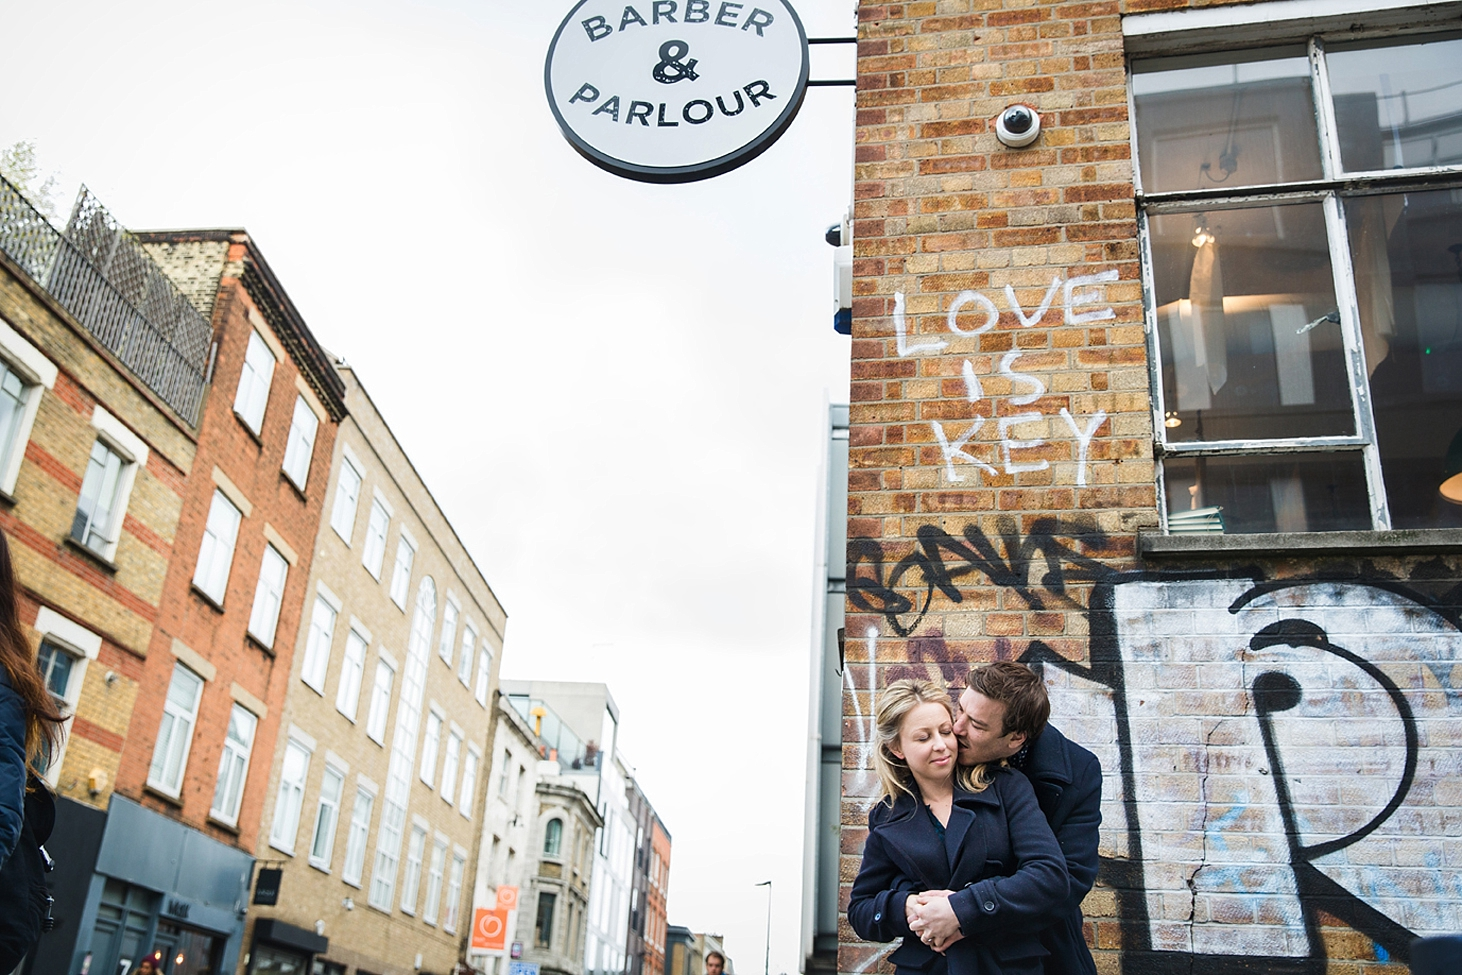 shoreditch engagement photography love is key portrait